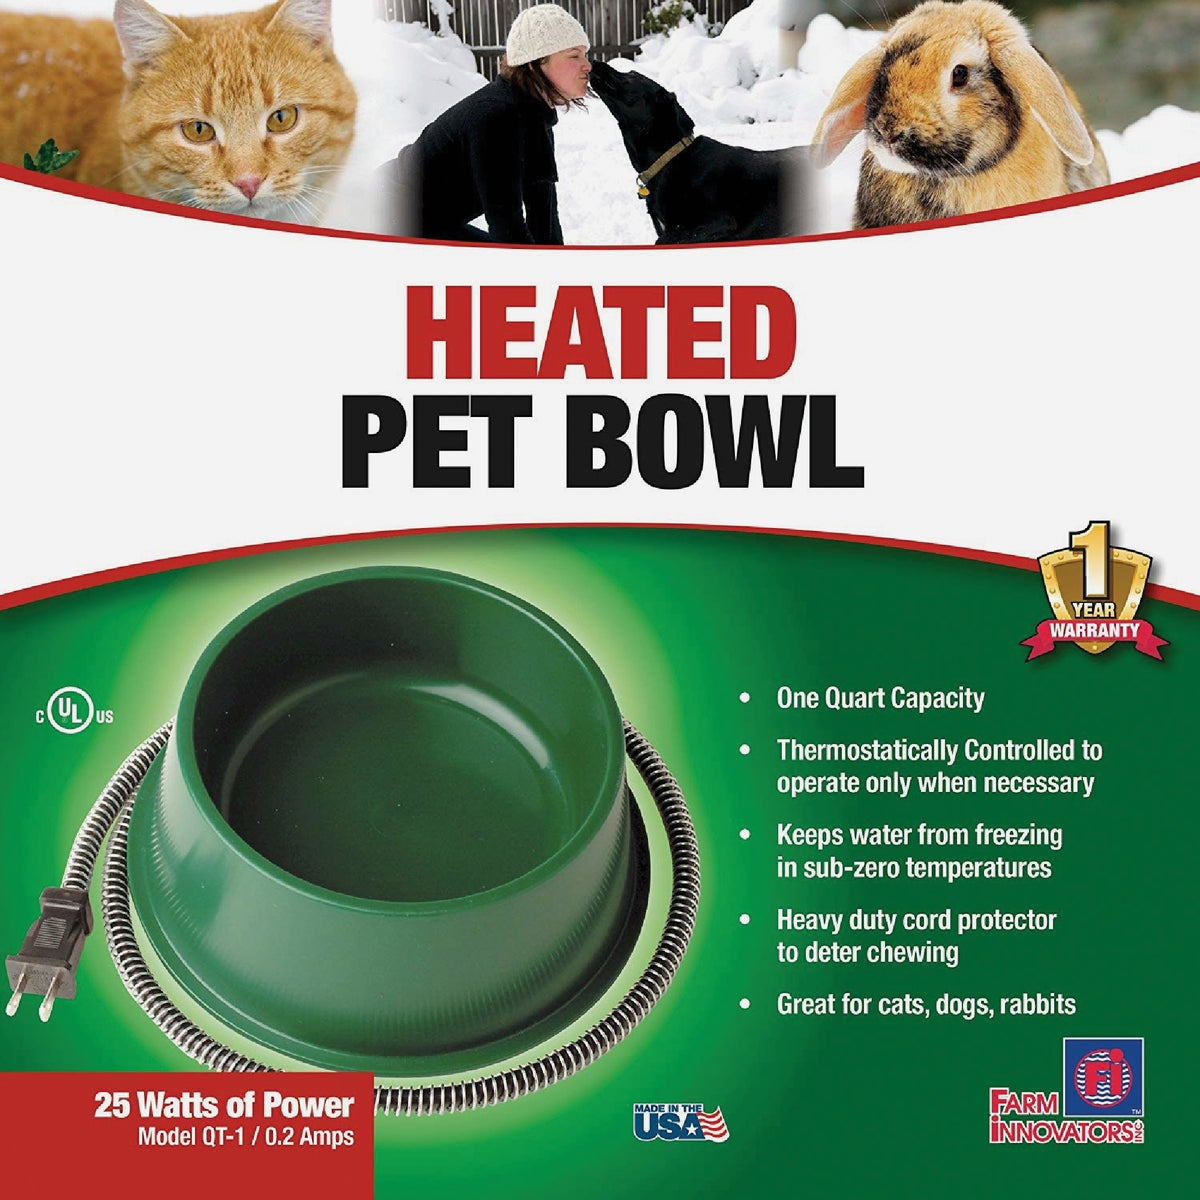 1 QT HEATED PET BOWL - 1B by Miller Manufacturing